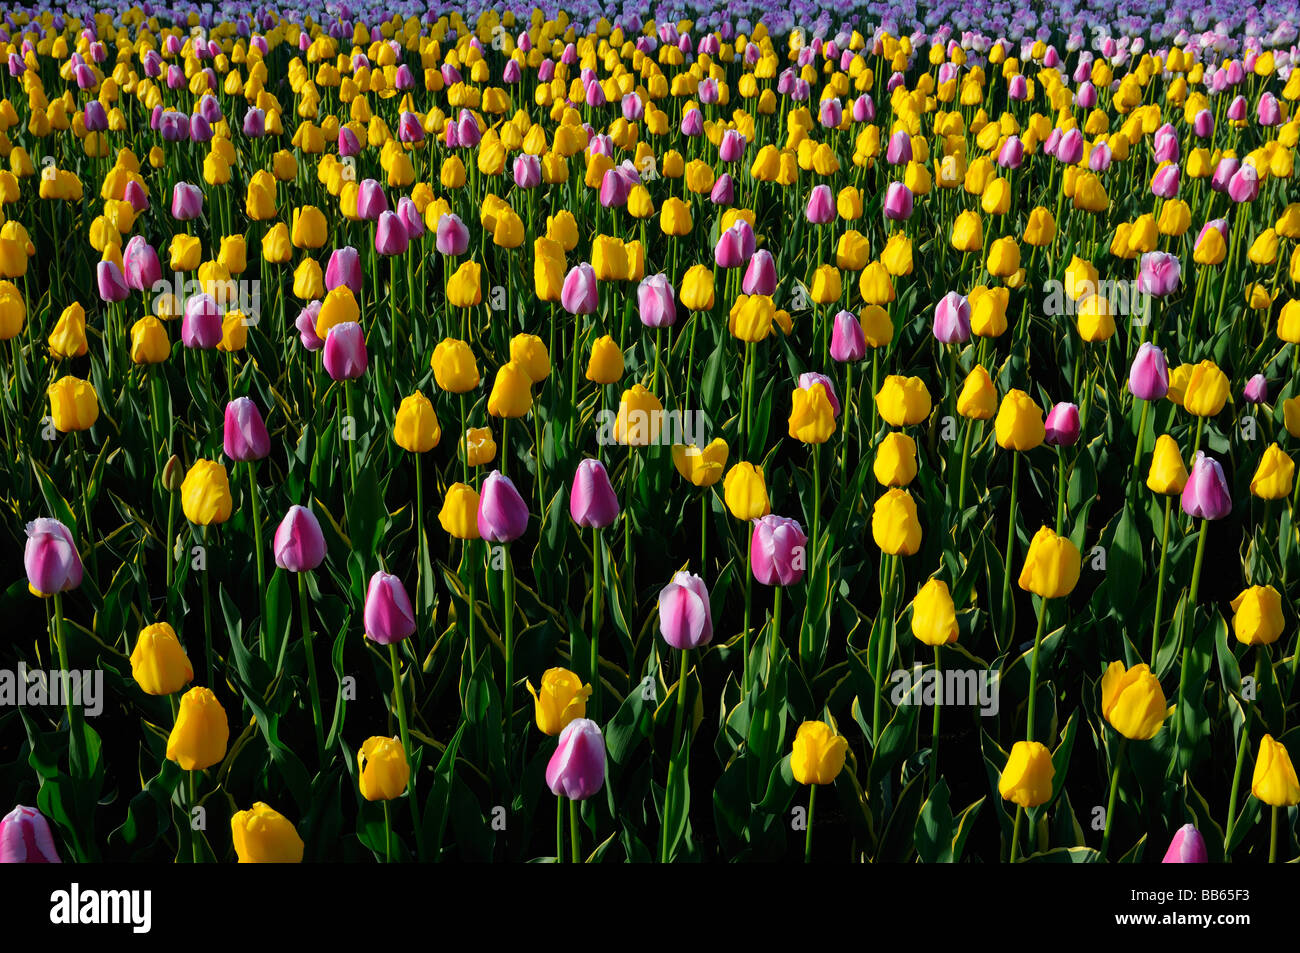 Gardne bed of sidelit yellow Garant and purple white Ollioules Dutch Tulips at Ottawa Tulip Festival in Spring Stock Photo